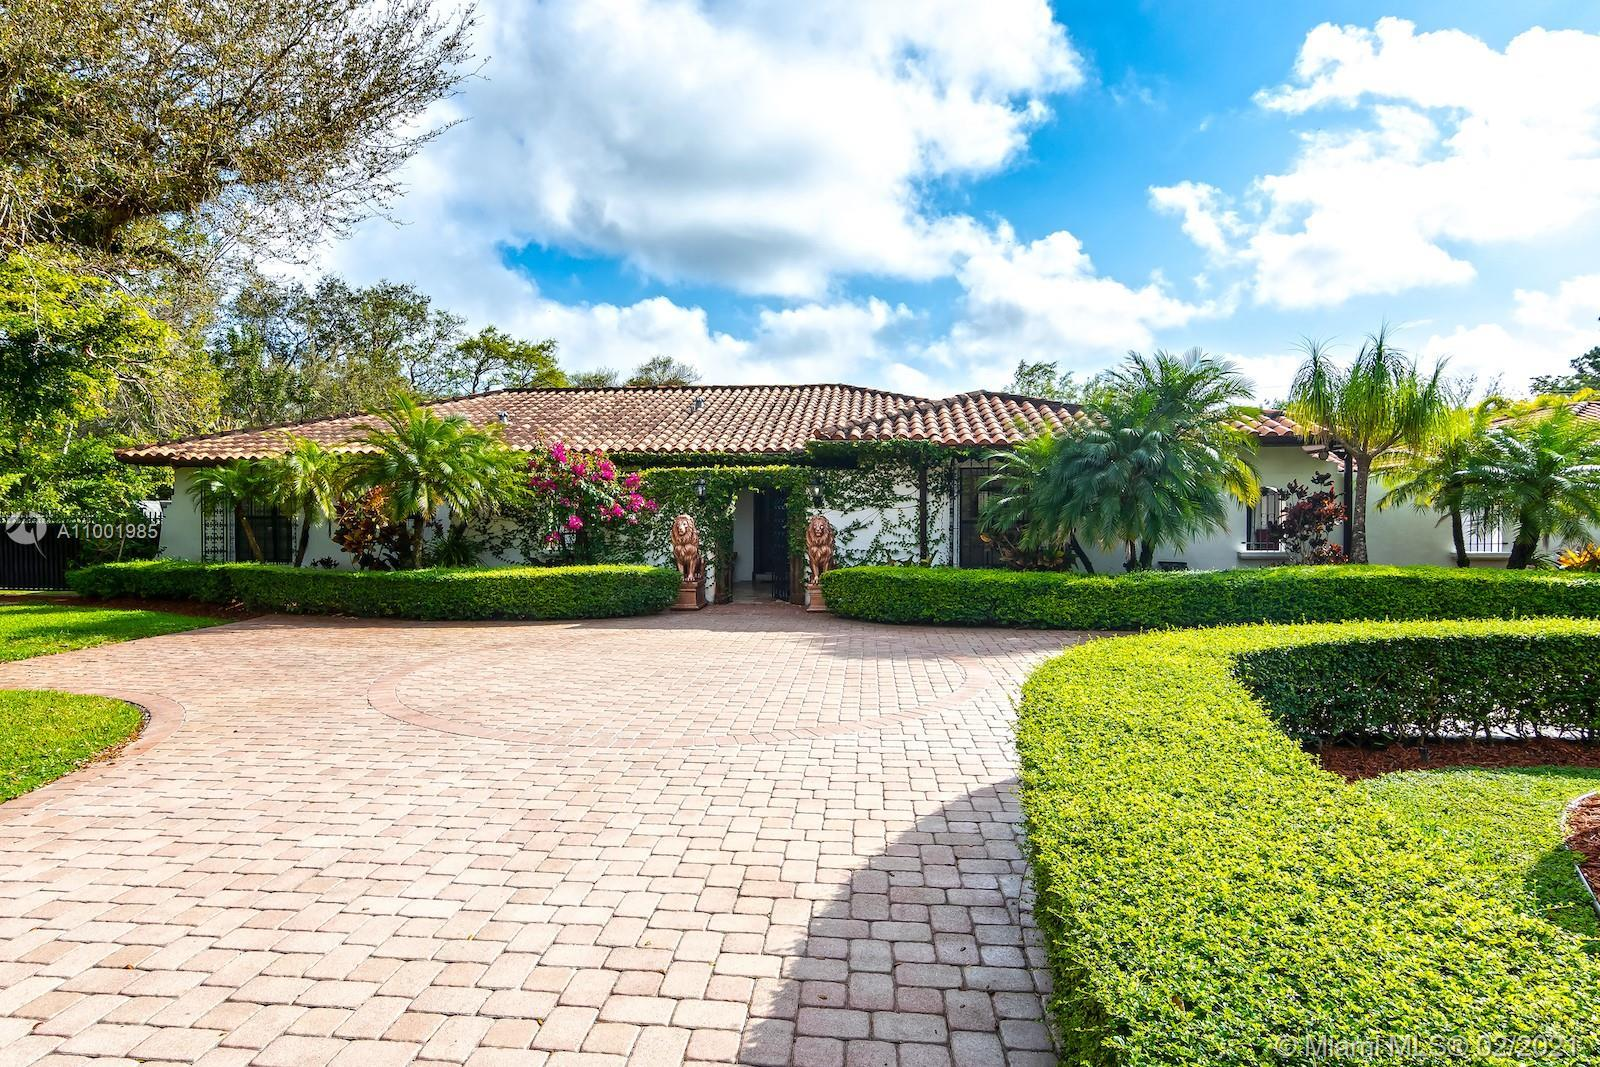 MJ Estates is proud to present this amazing and secluded one story home located in the sought after